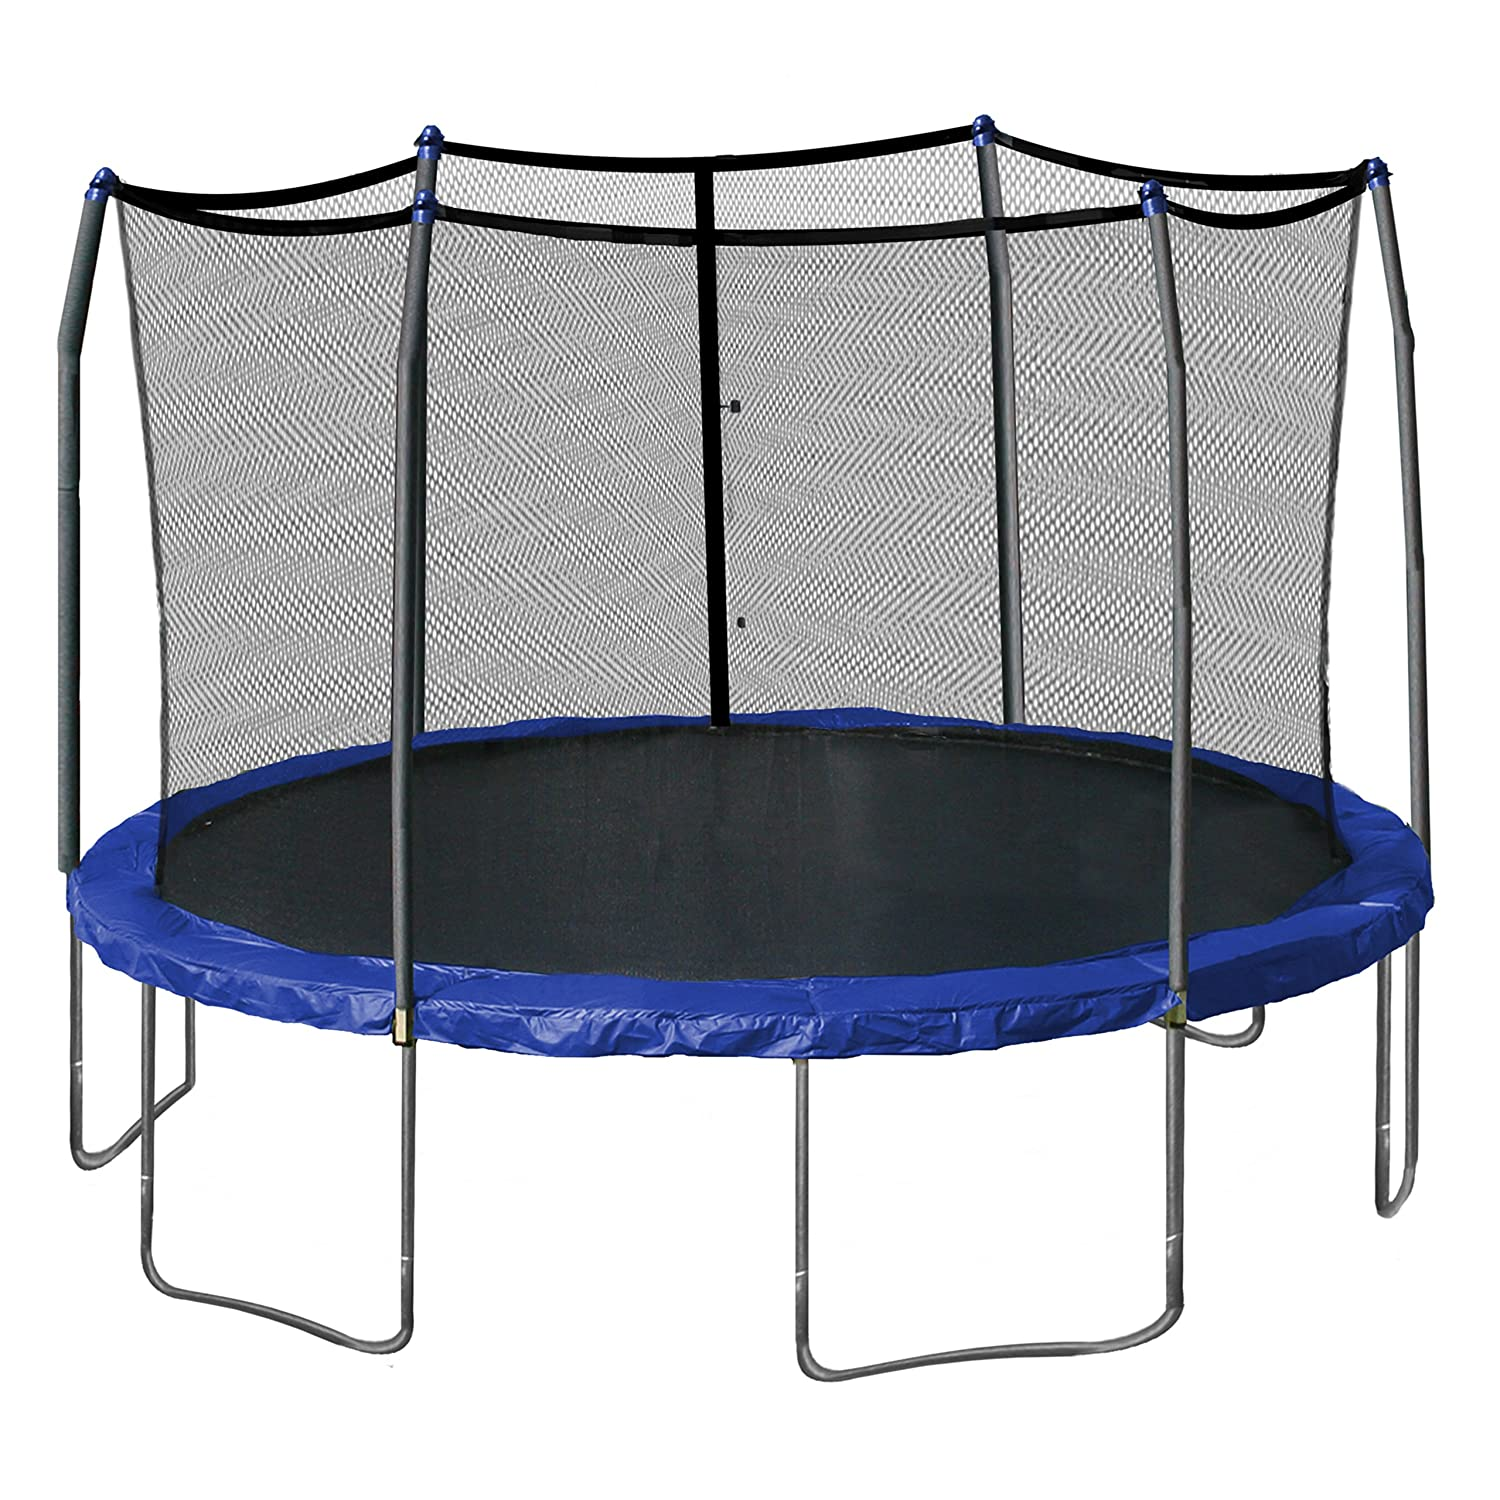 trampolines 15 foot round. Black Bedroom Furniture Sets. Home Design Ideas